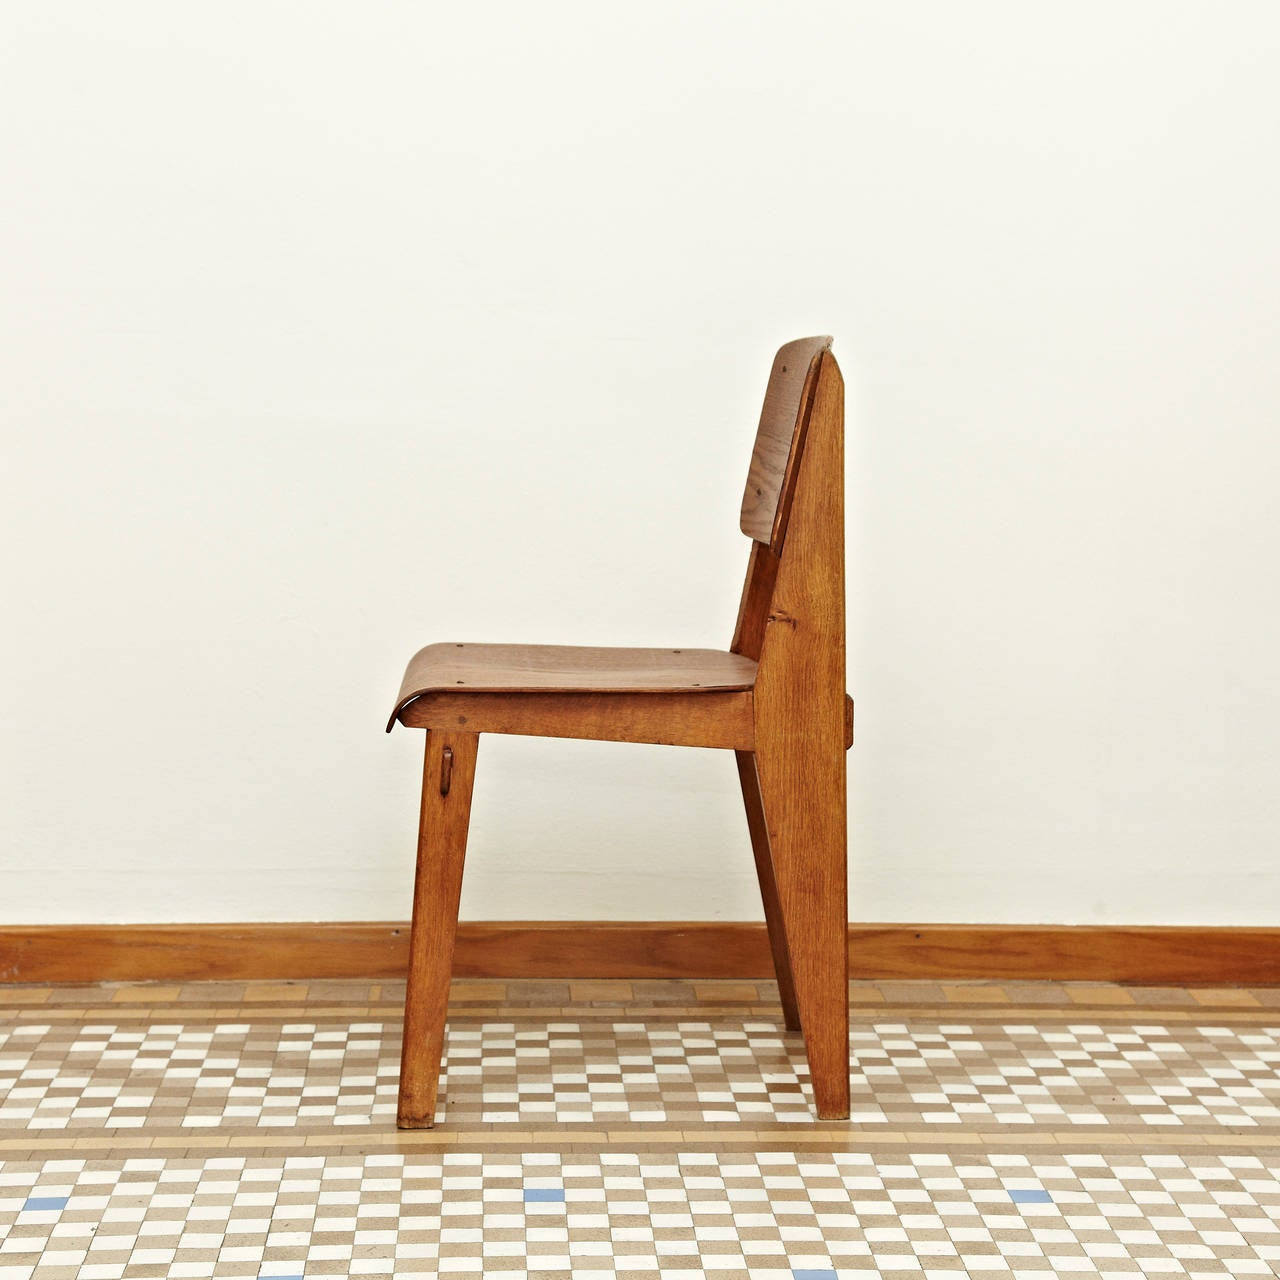 Jean prouv standard chair tout bois 1941 at 1stdibs - Jean prouve chaise standard ...